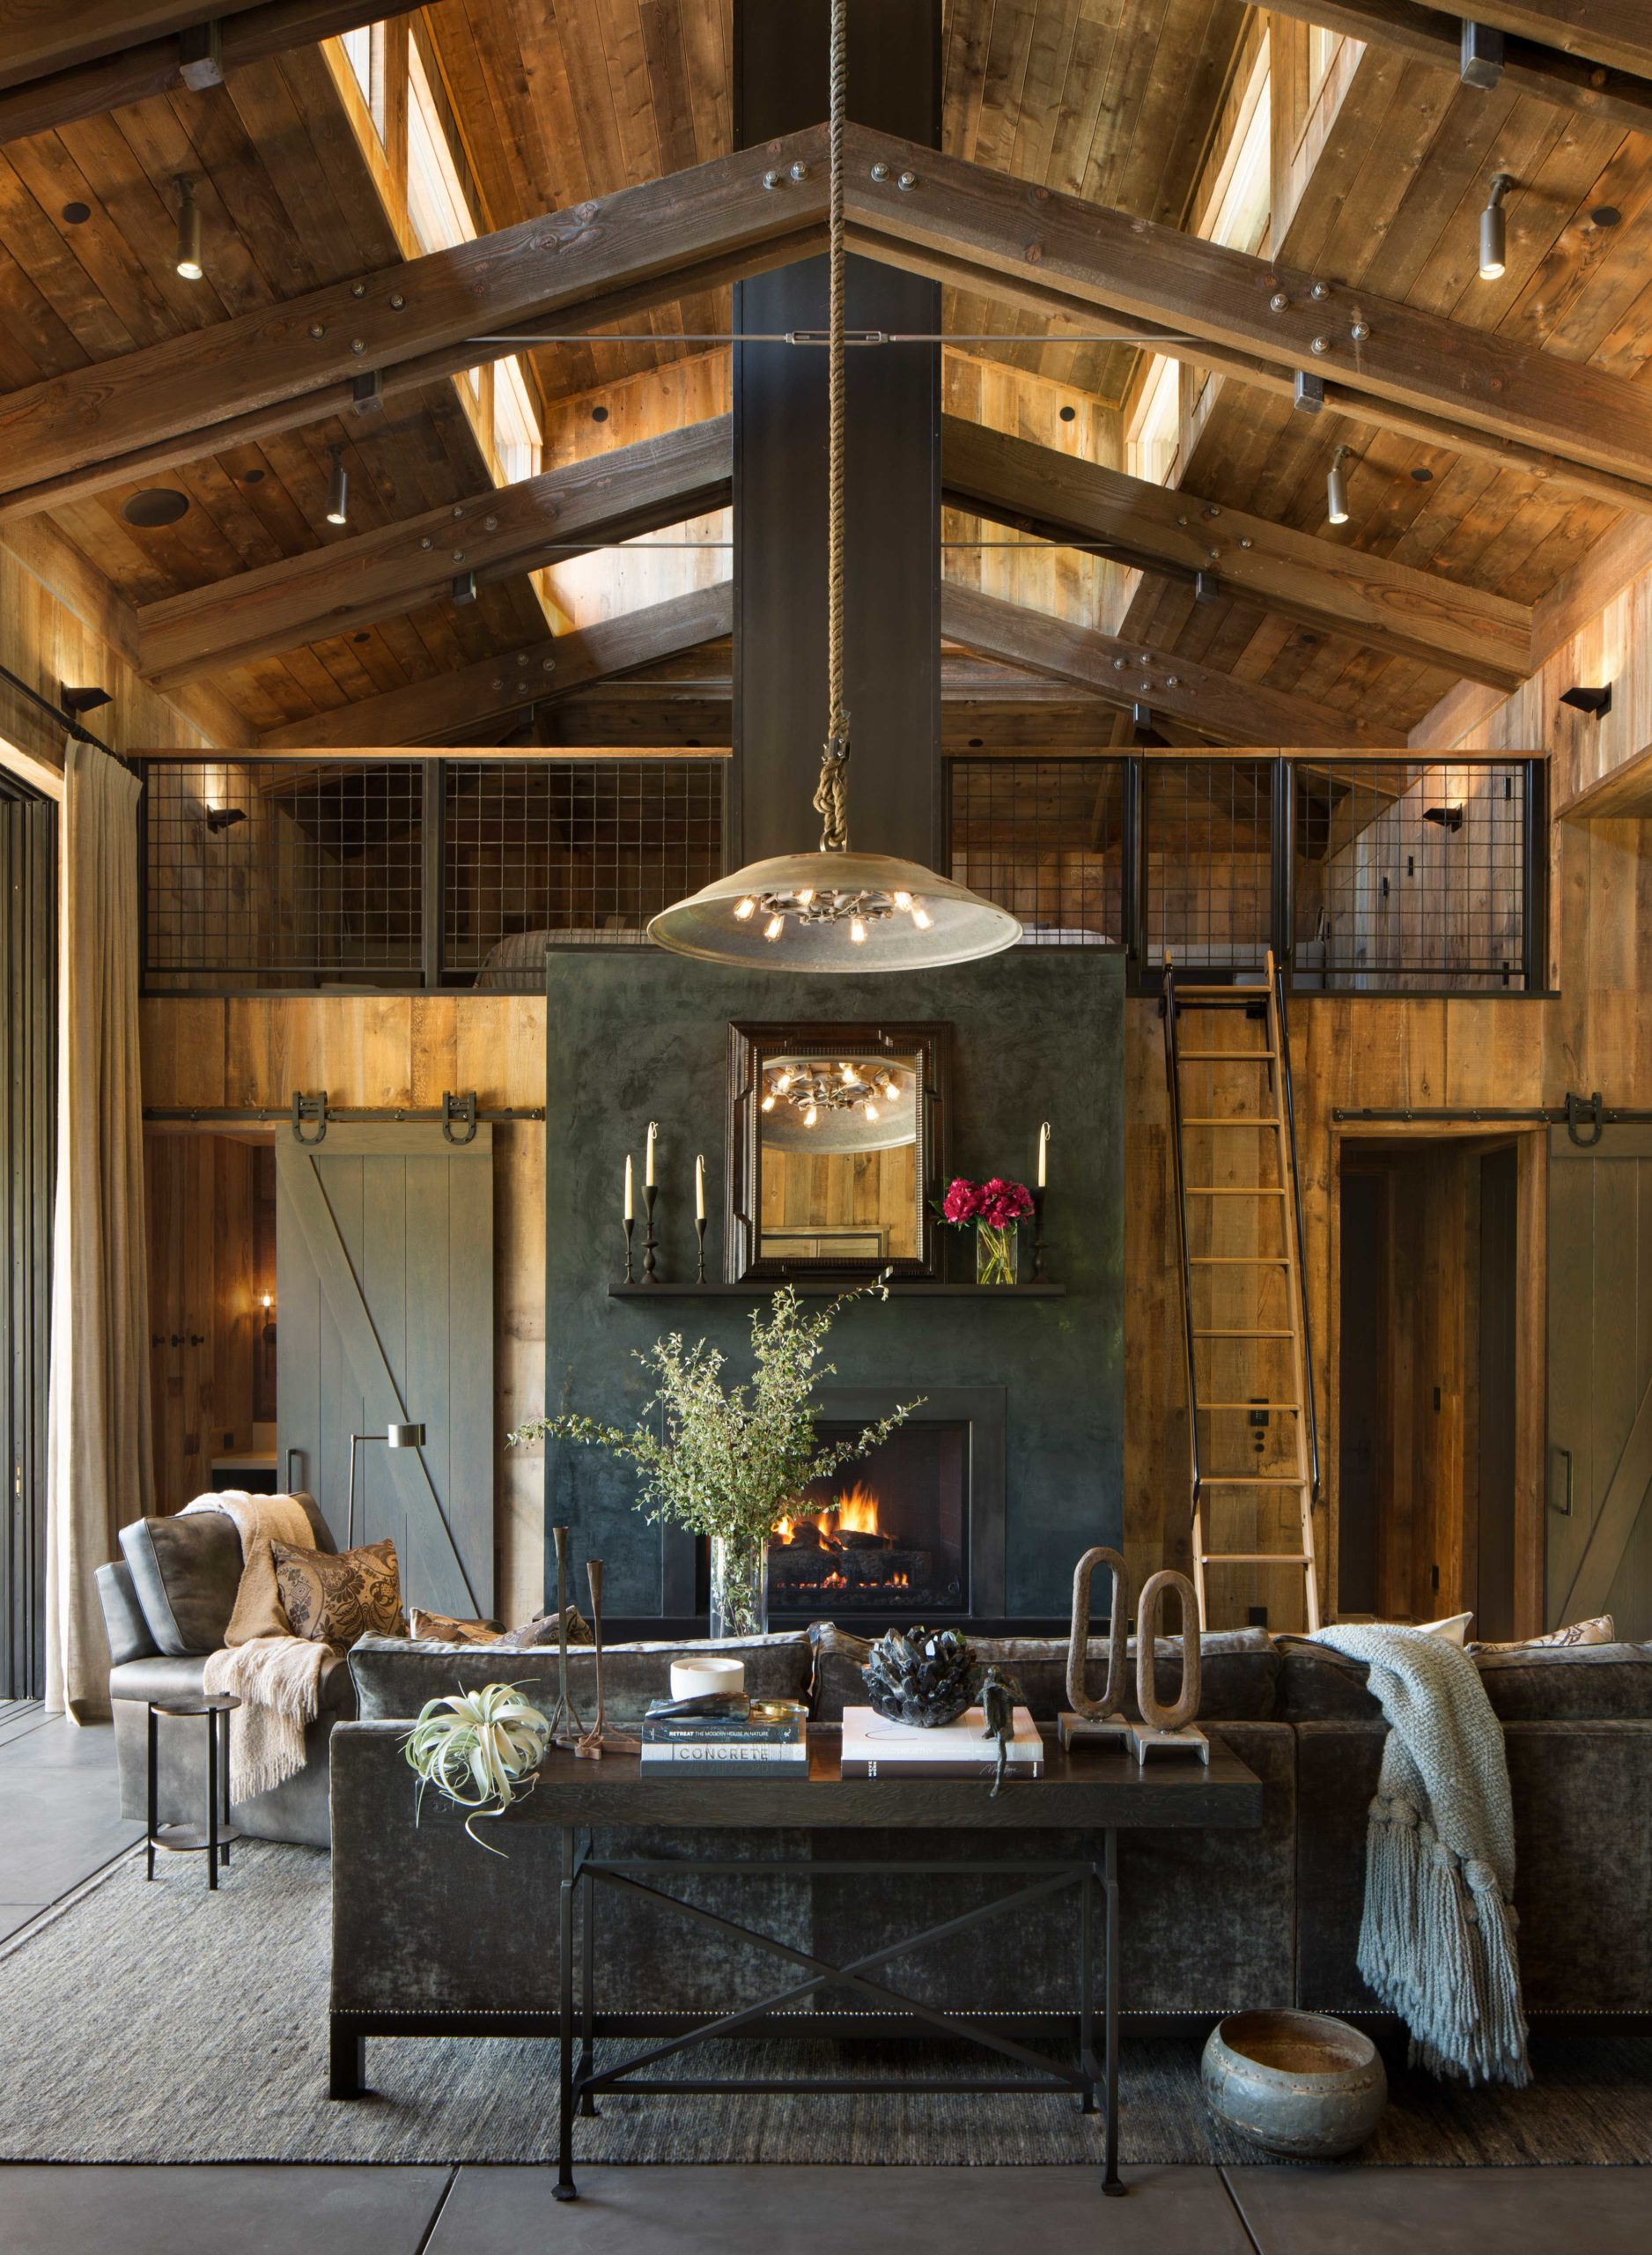 Jennifer_robins_interiors_projects_st_helena_II_Bergman_02_HR_living_room_fireplace_couch